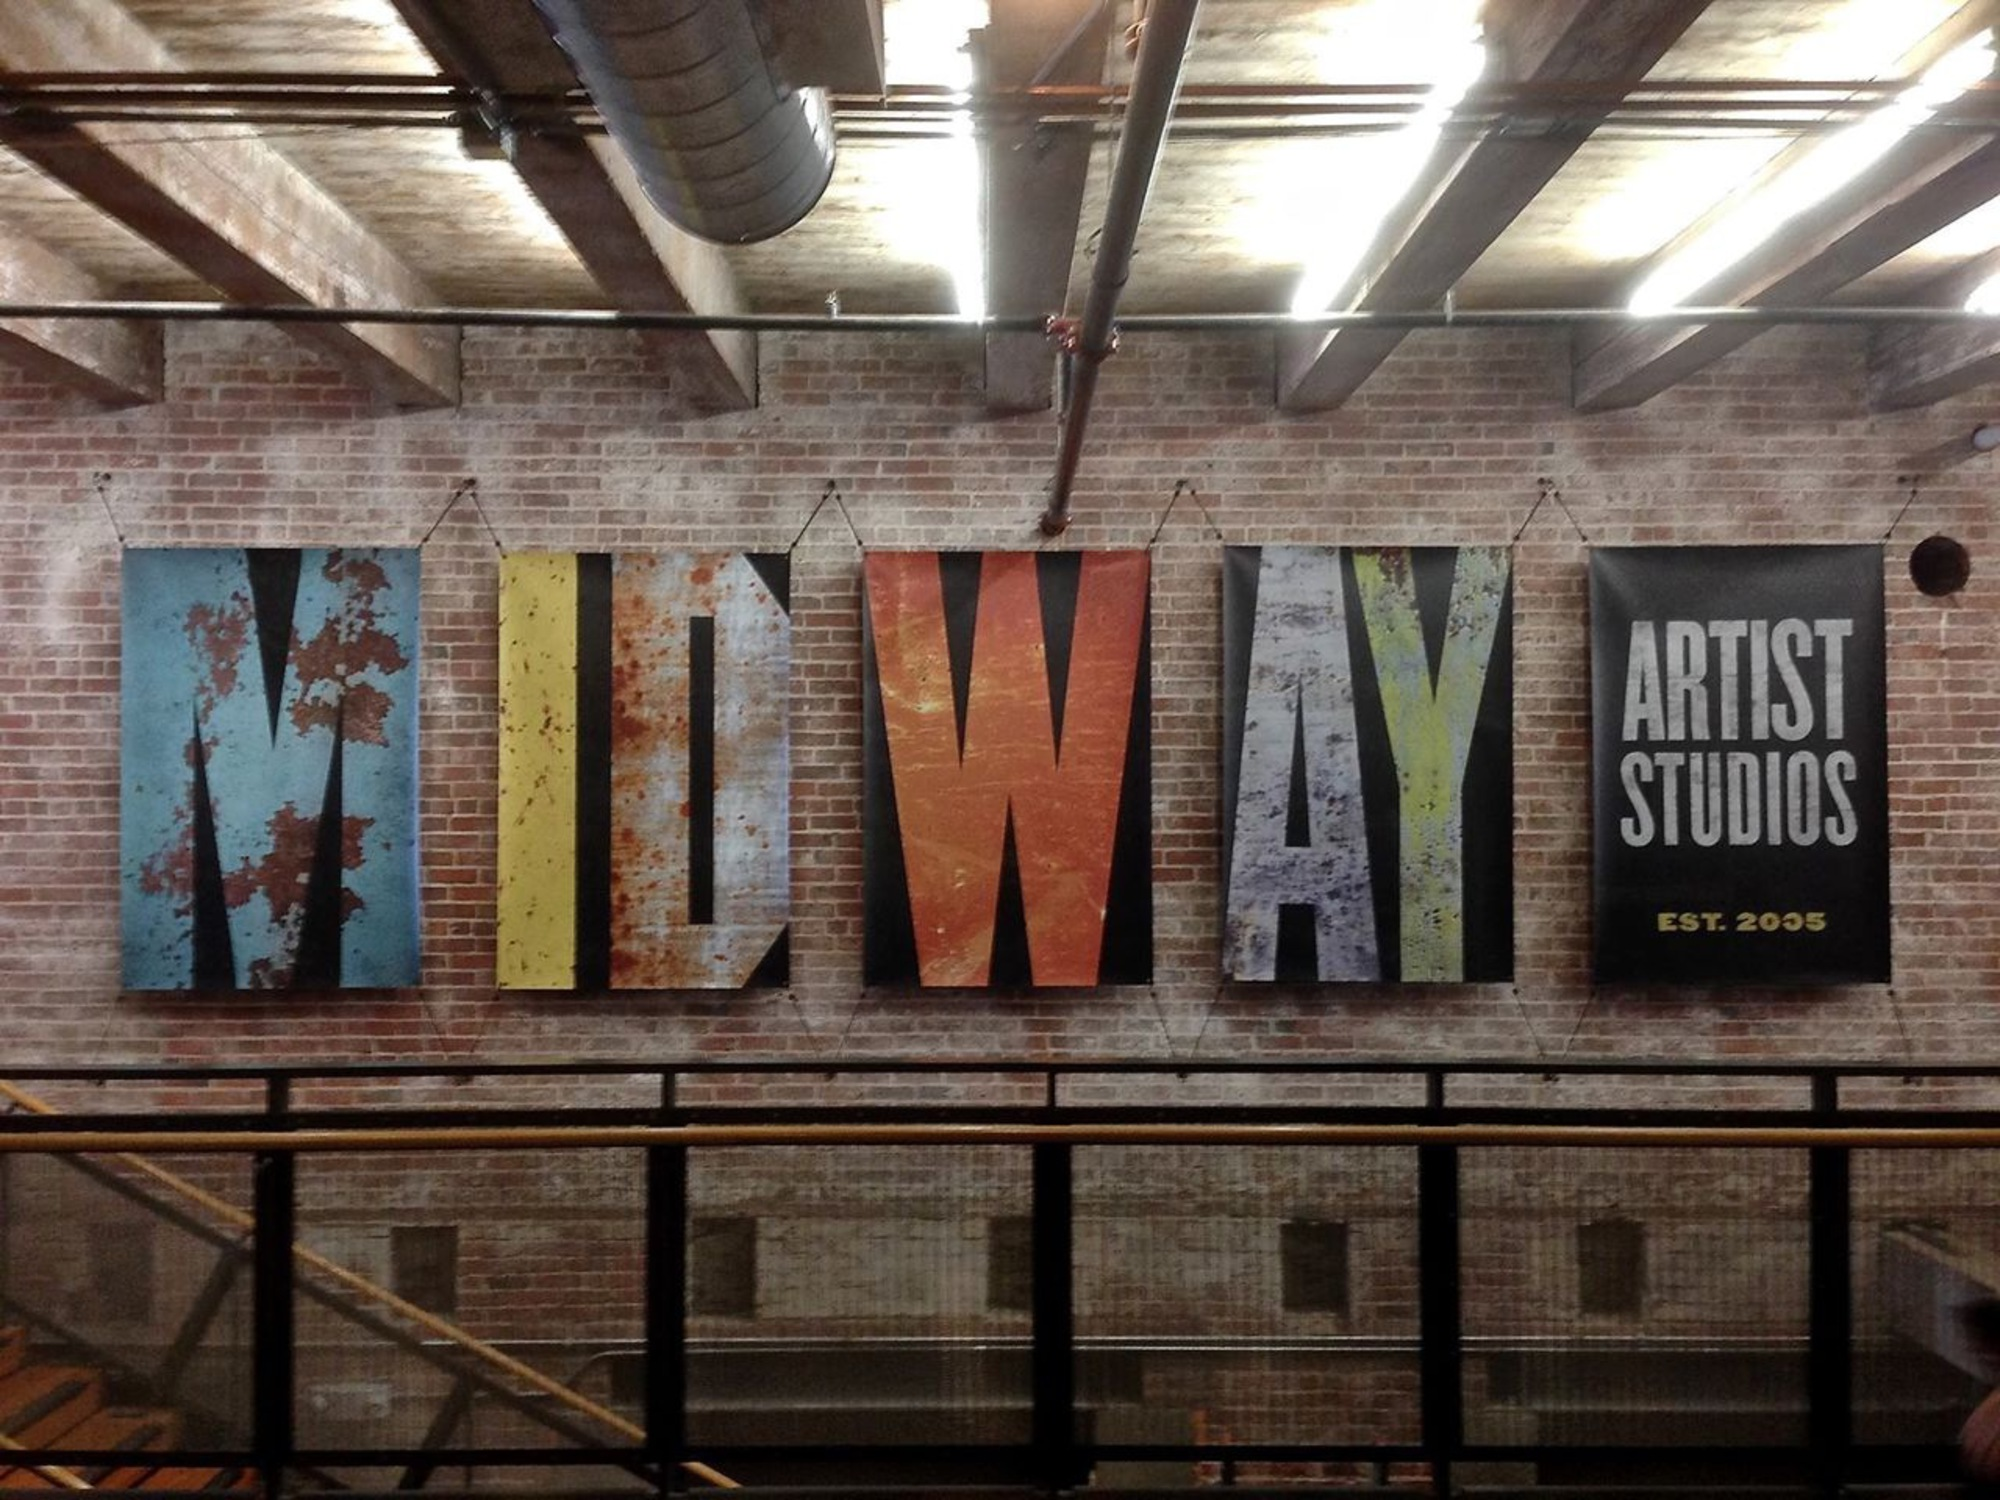 Midway Artist Studios - Lobby banners